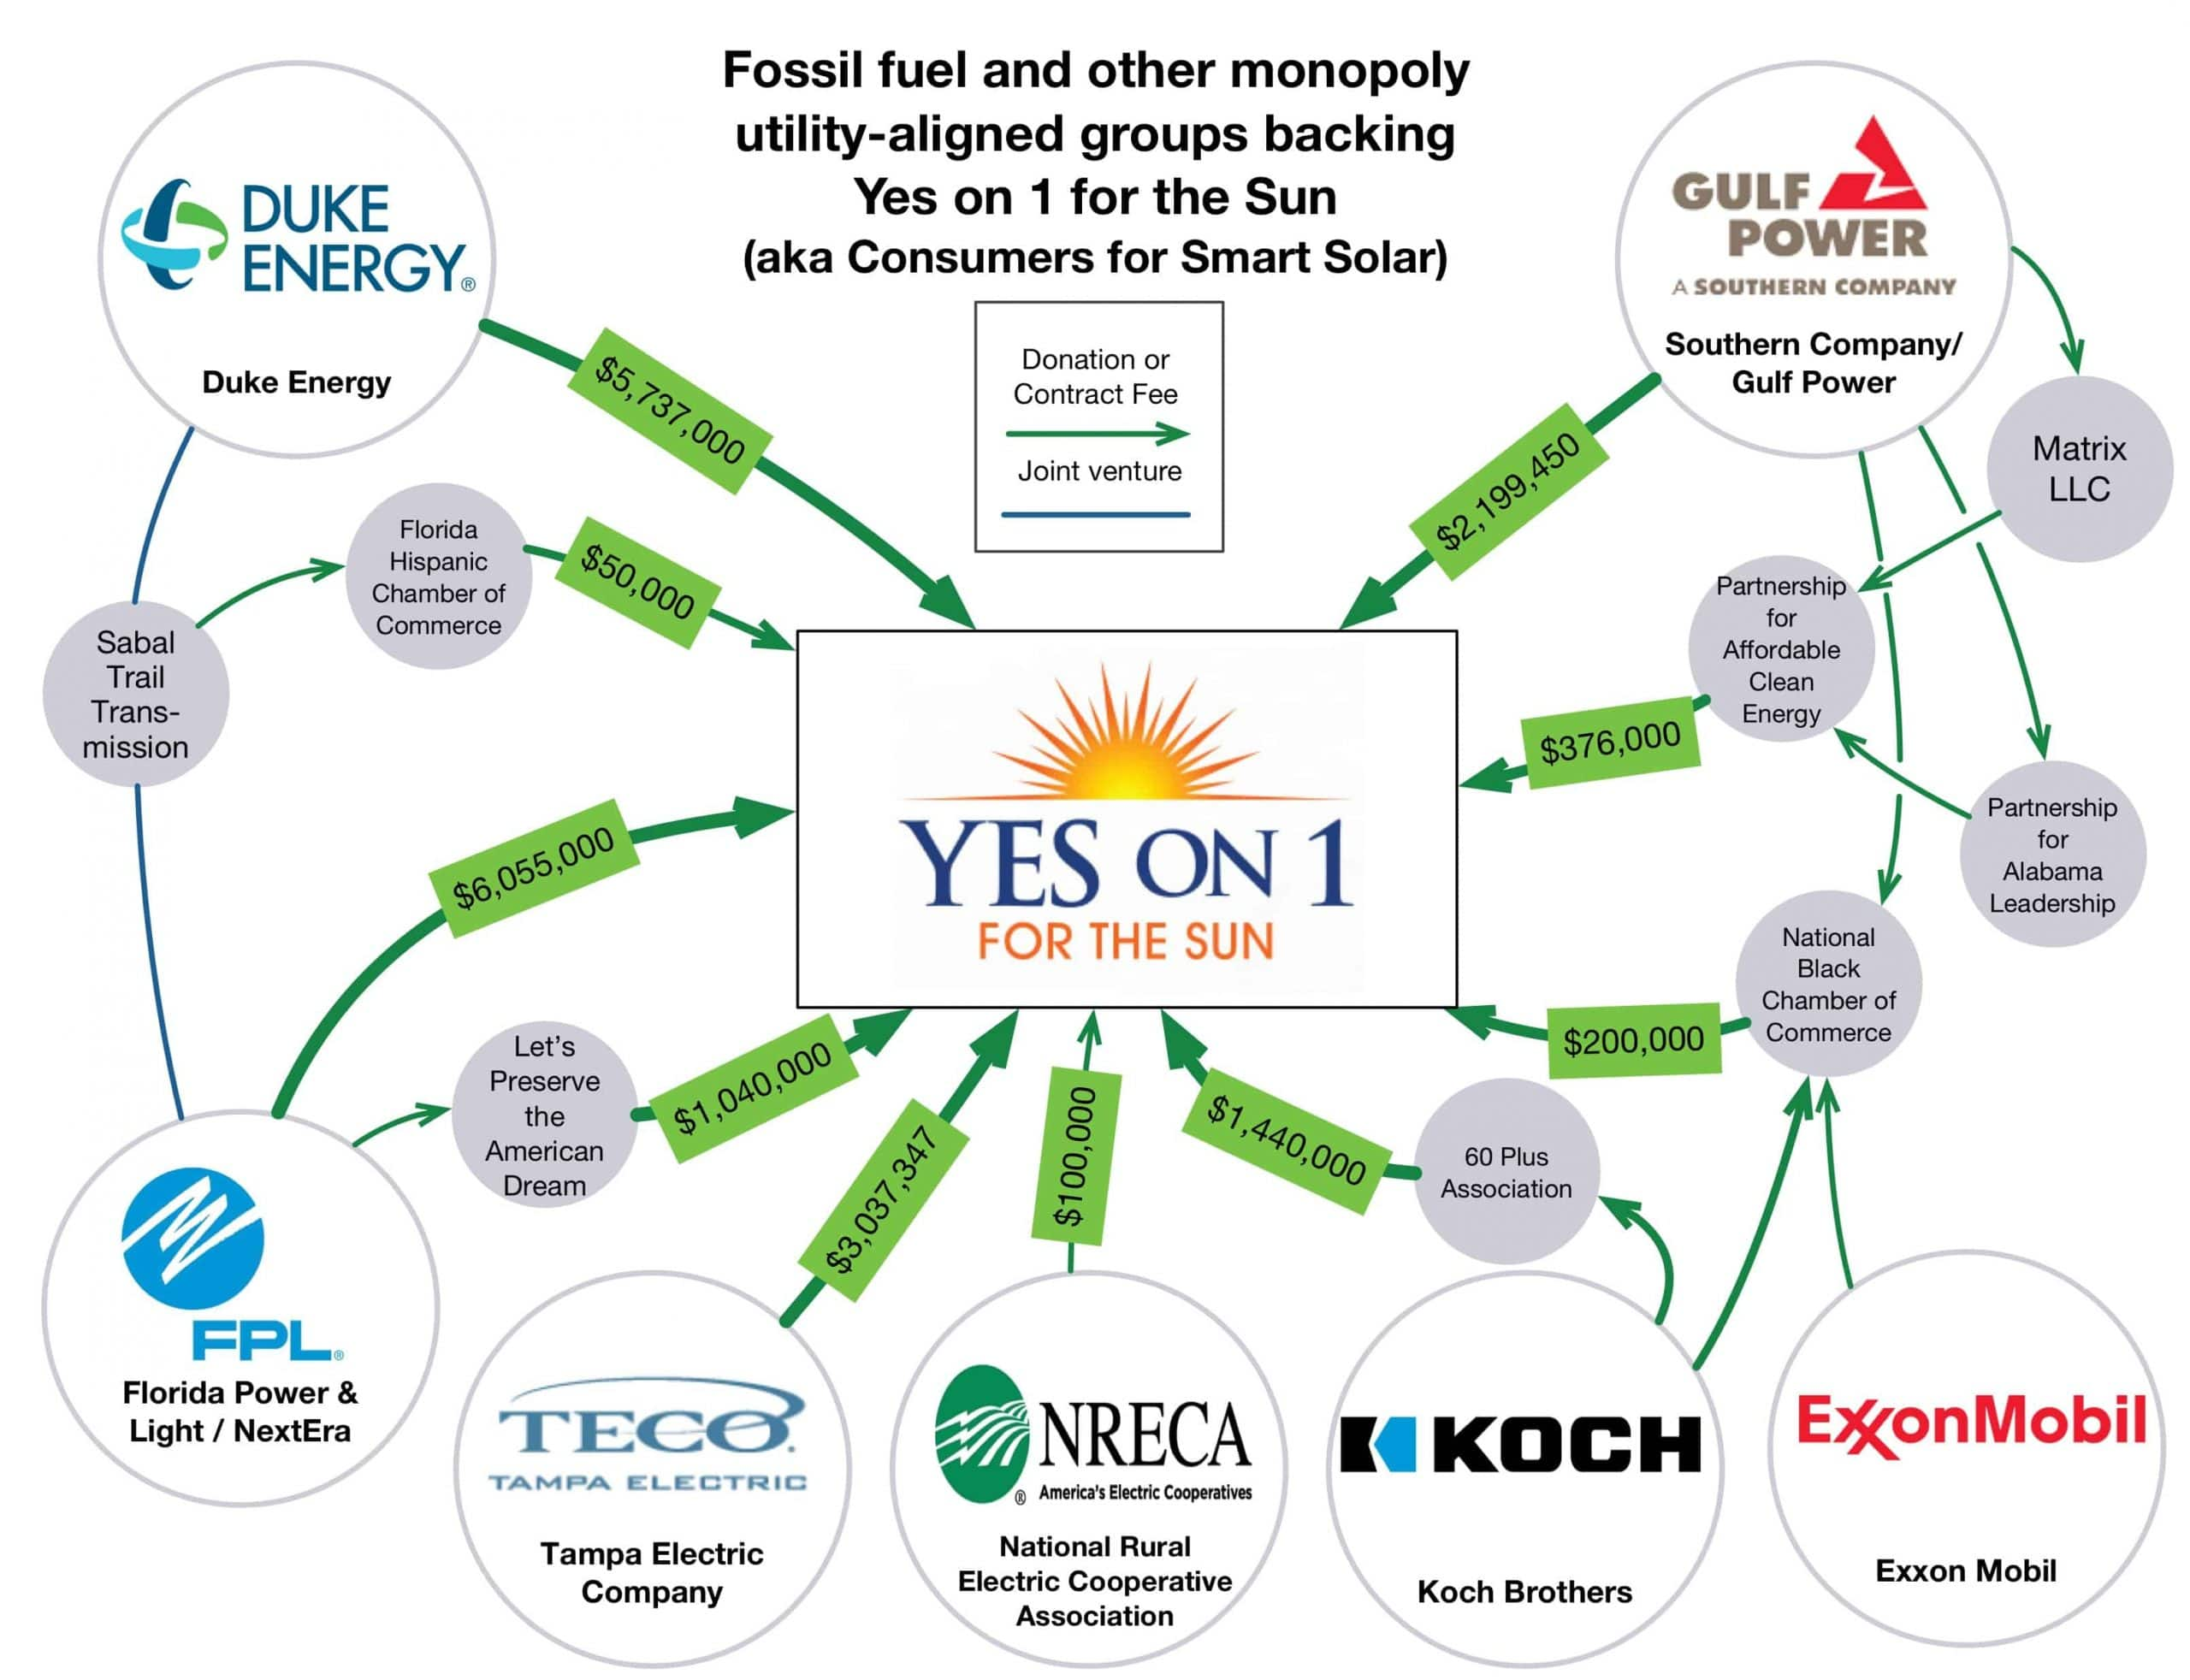 Funding to Consumers for Smart Solar for Amendment 1 as of Oct. 14, 2016